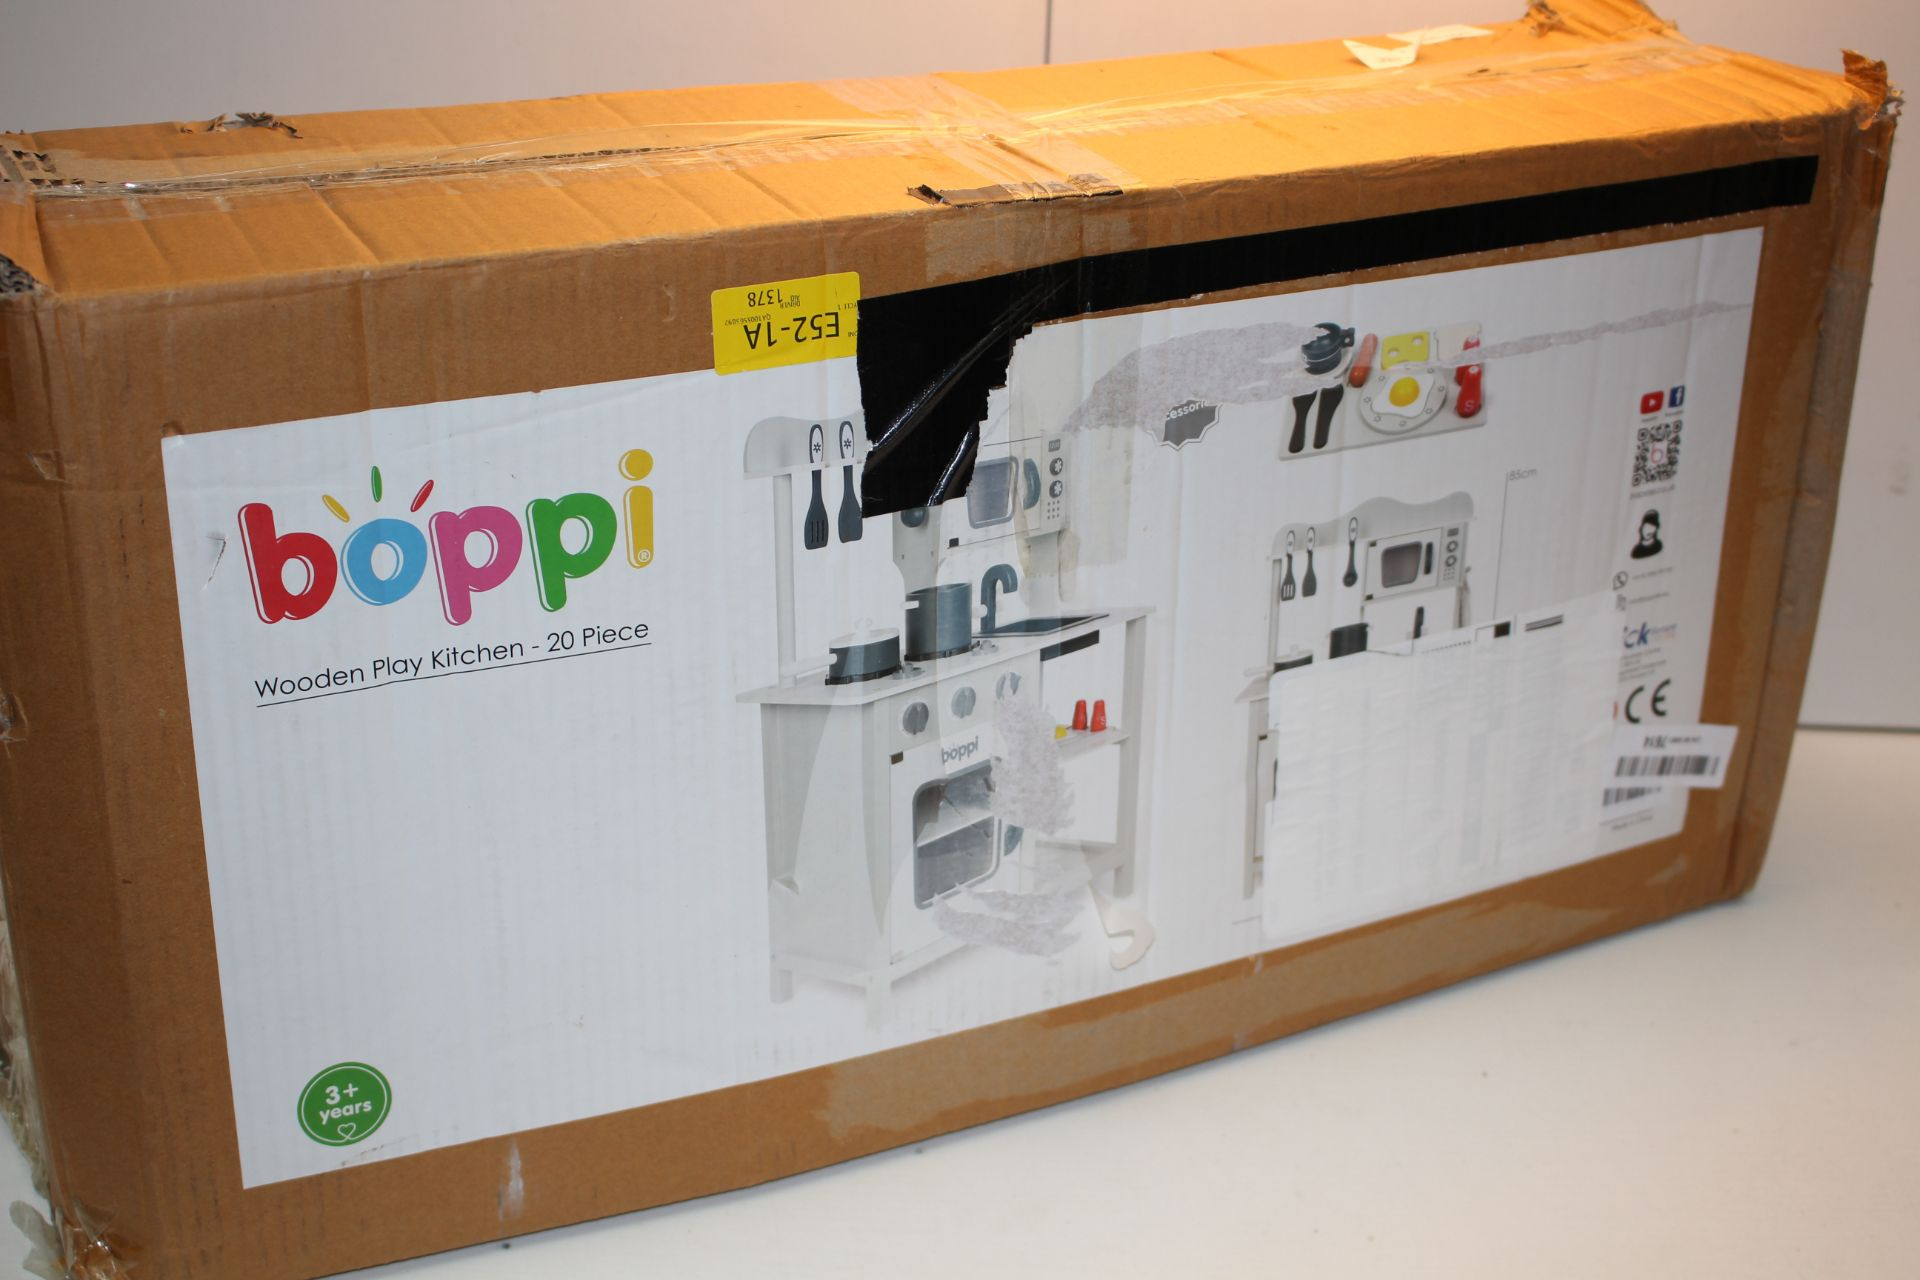 BOXED BOPPI WOODEN PLAY KITCHEN 20PC SET MODEL: W10C045 RRP £69.99Condition ReportAppraisal